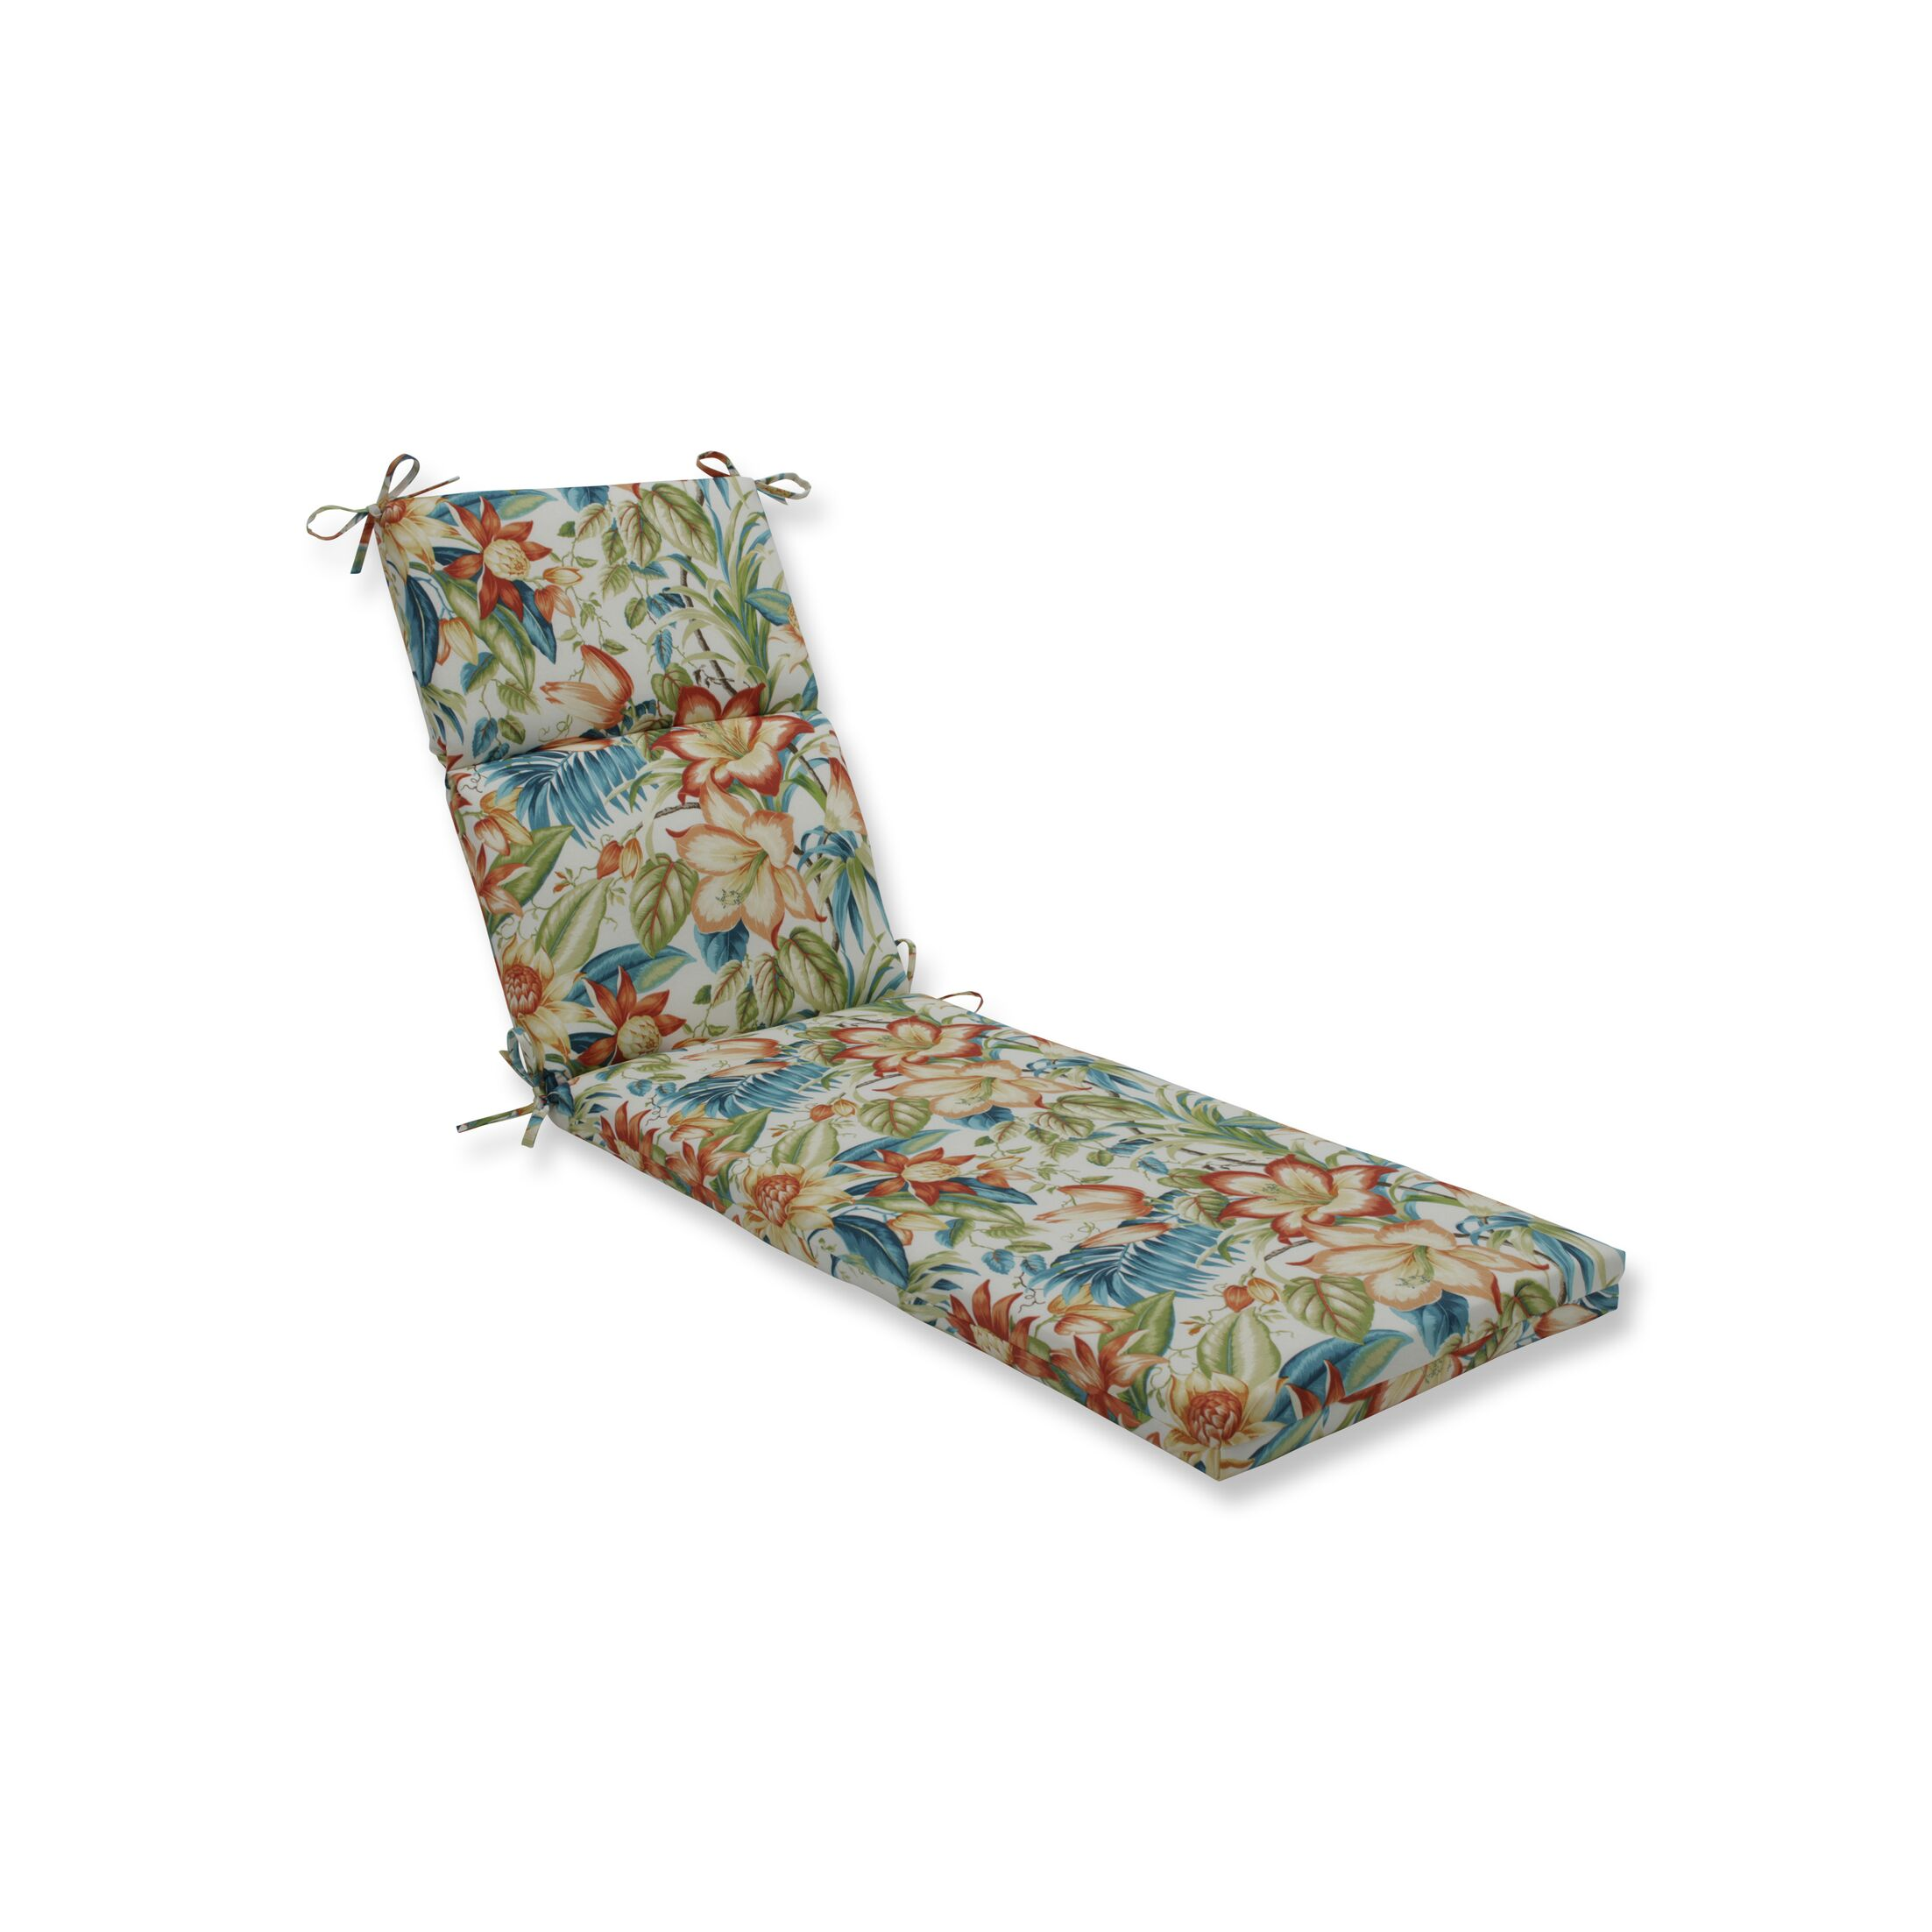 Botanical Glow Tiger Lily Outdoor Chaise Lounge Cushion